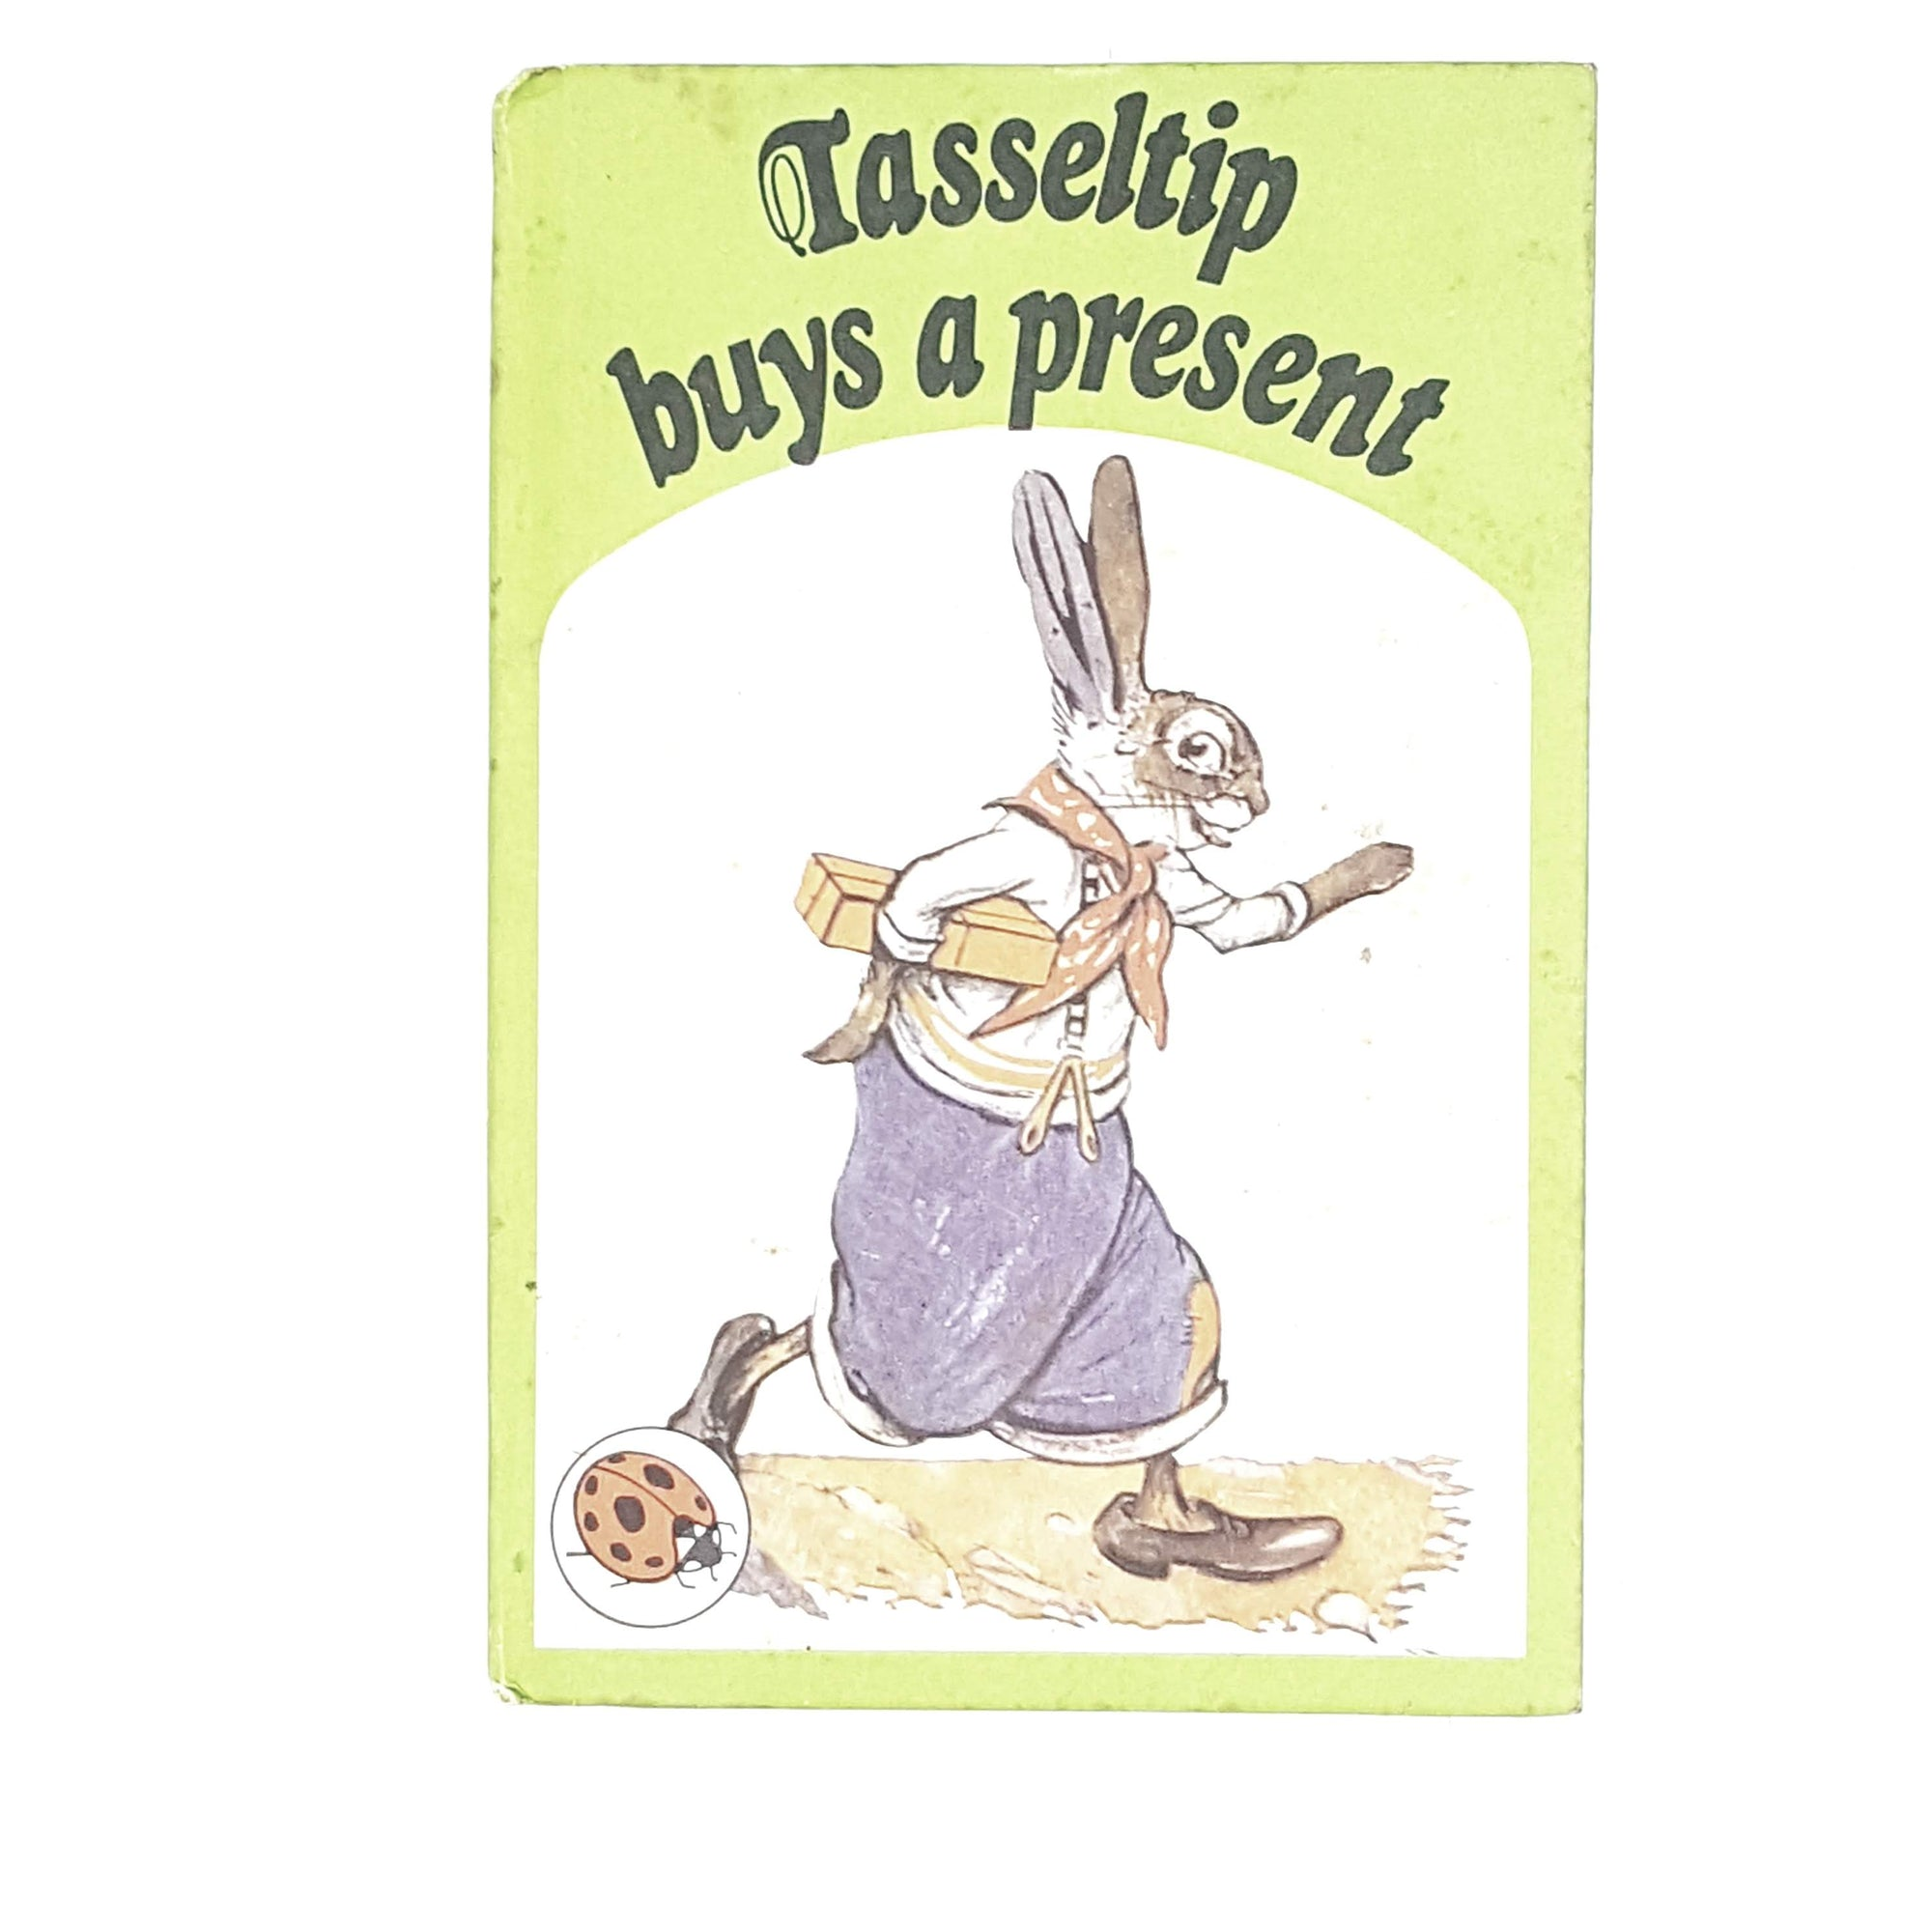 vintage-ladybird-tasseltip-buys-a-present-1975-kindergarten-books-country-house-library